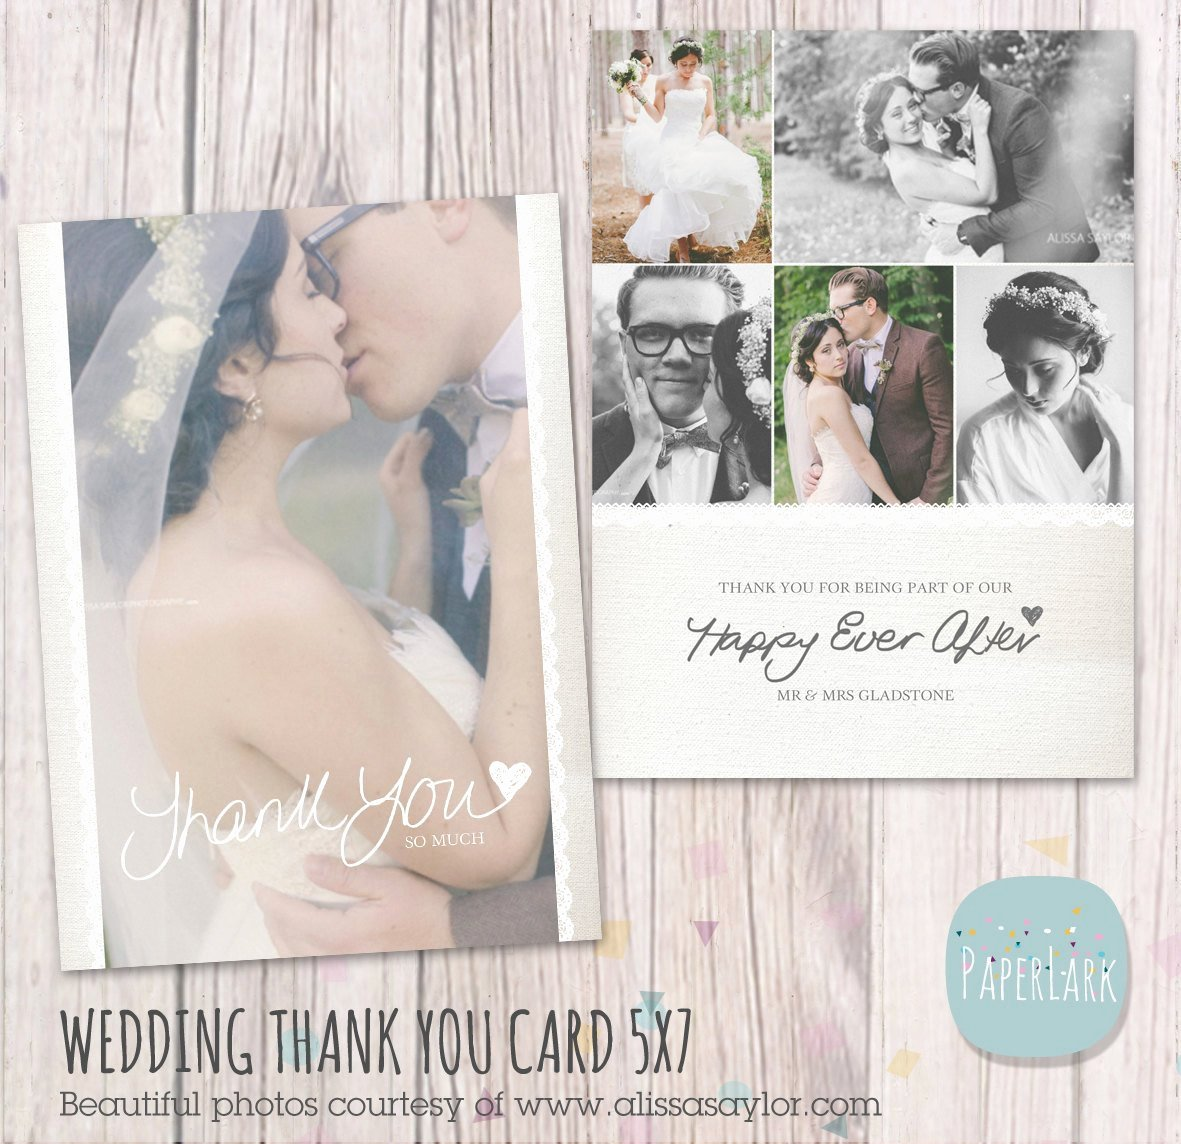 Wedding Thank You Card Template Best Of Wedding Thank You Card Shop Template Aw016 Instant